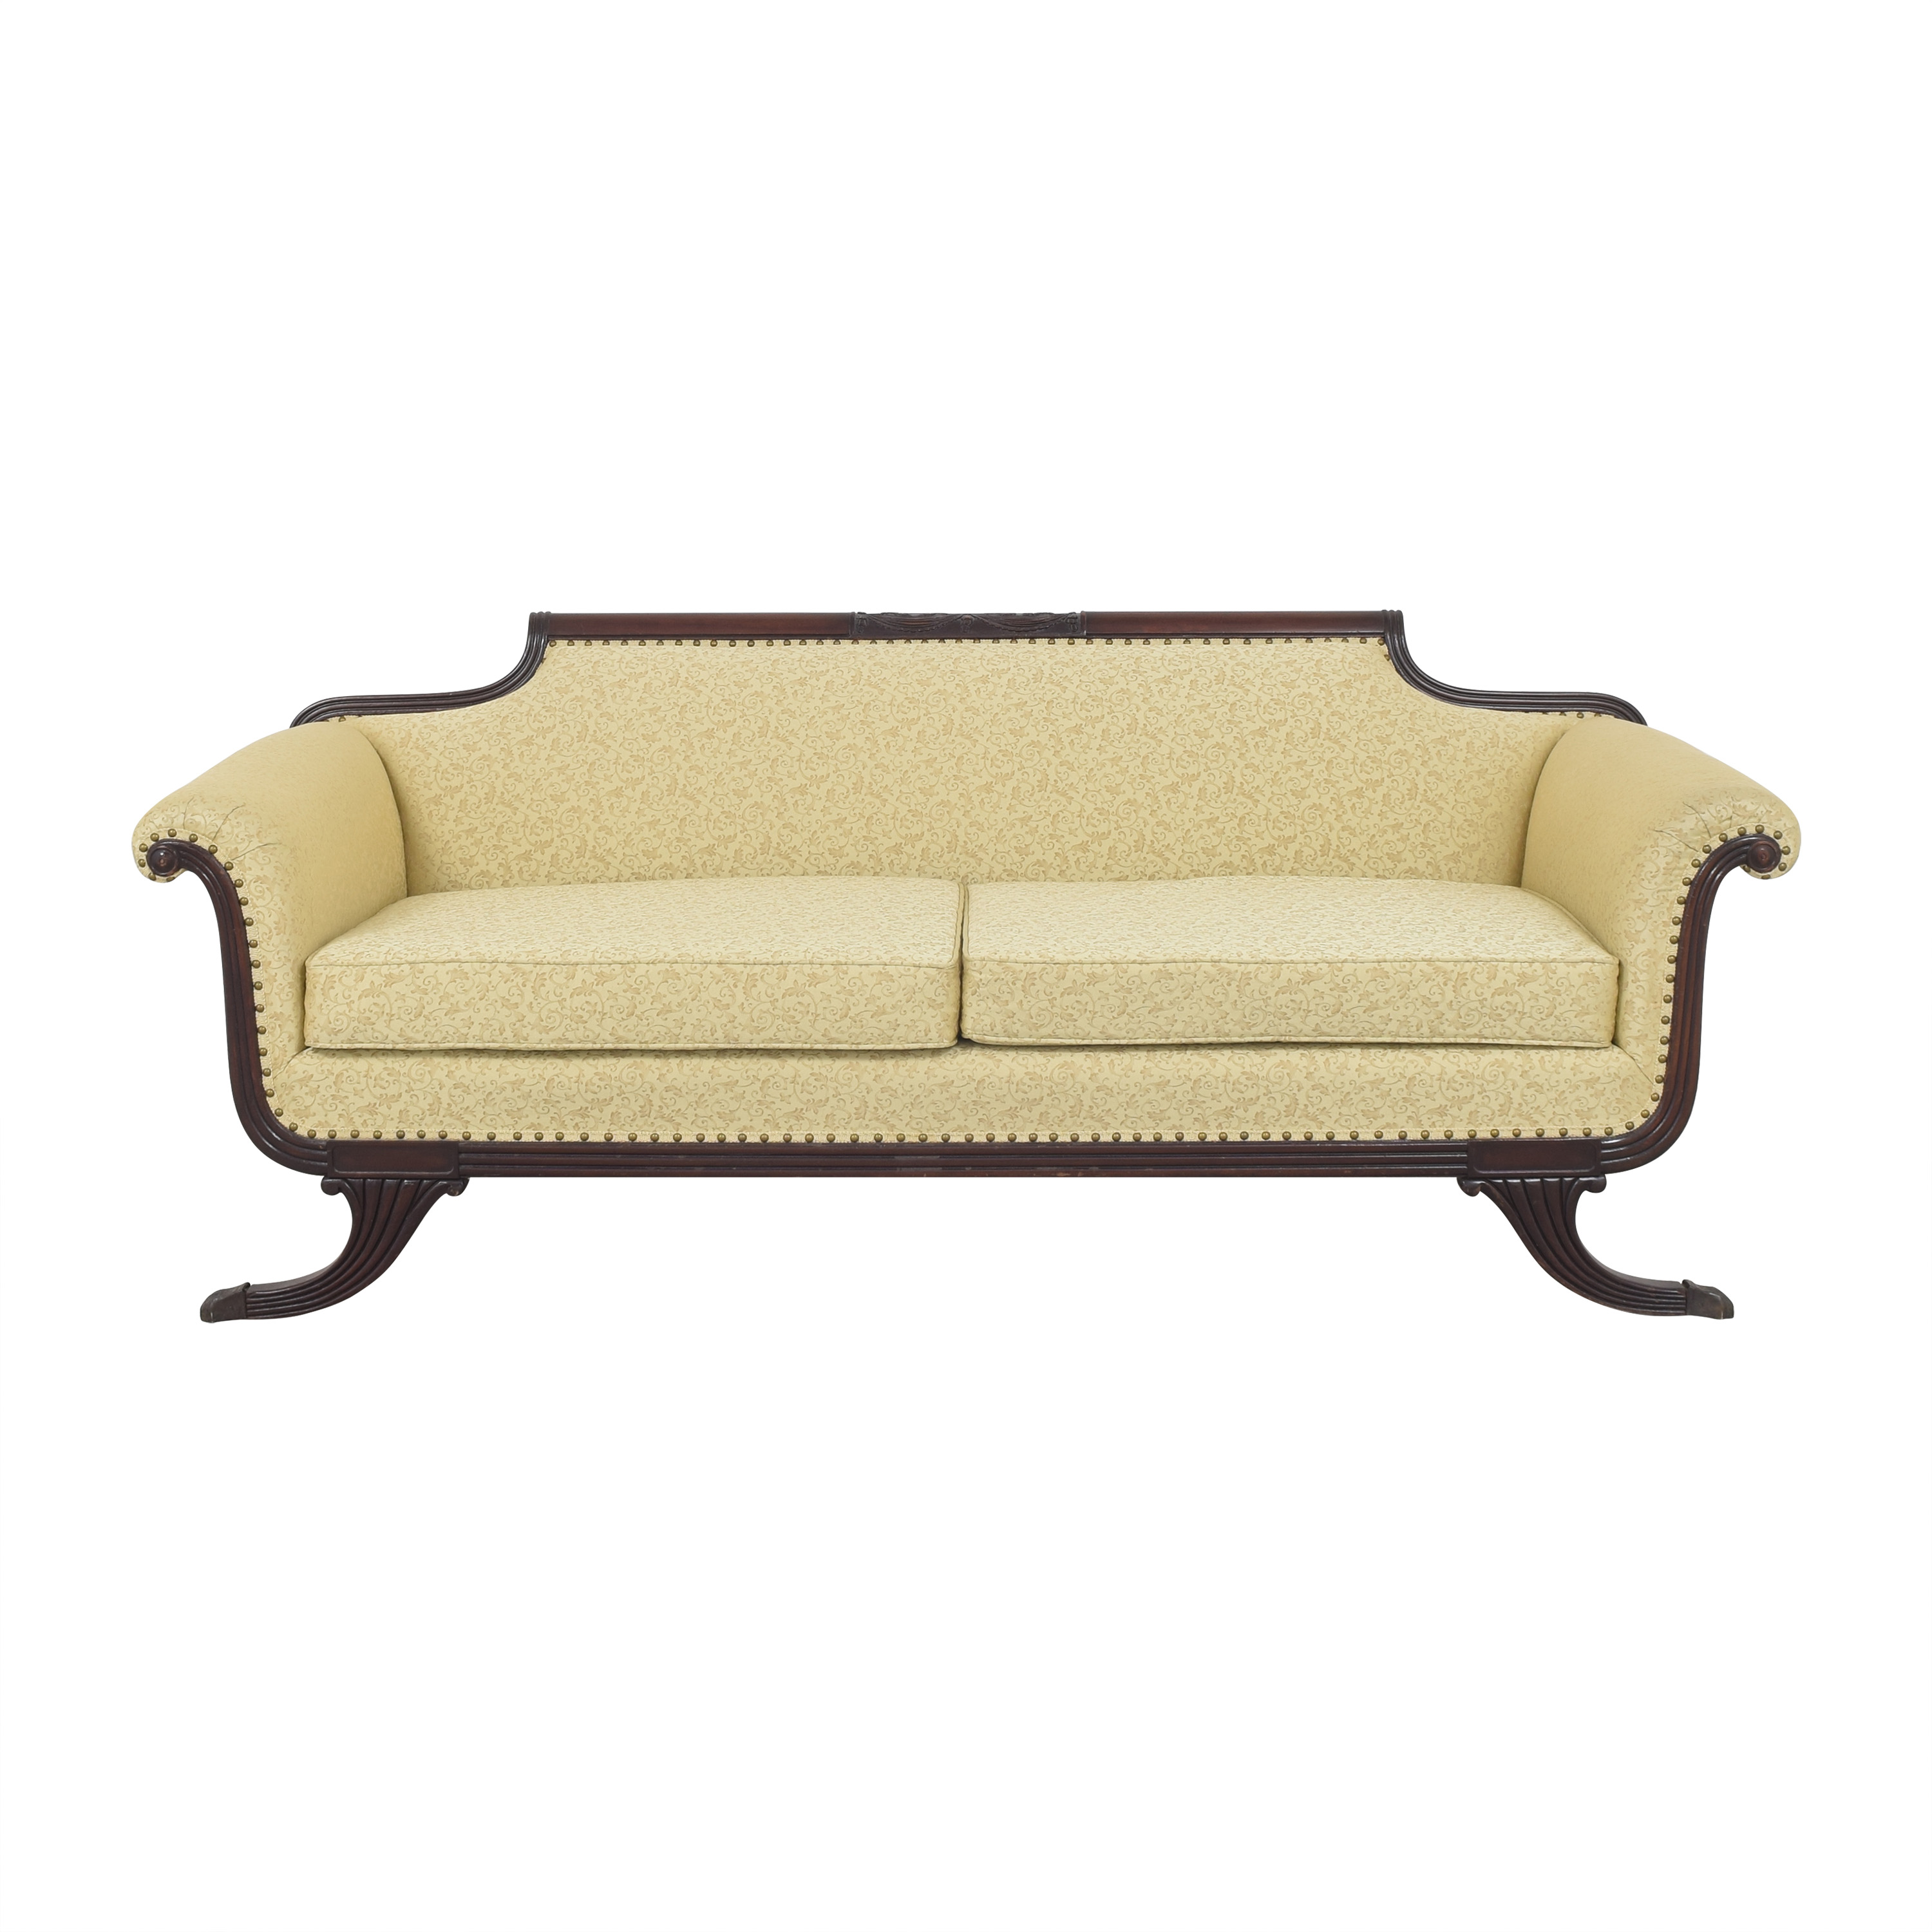 Custom French-Style Sofa coupon